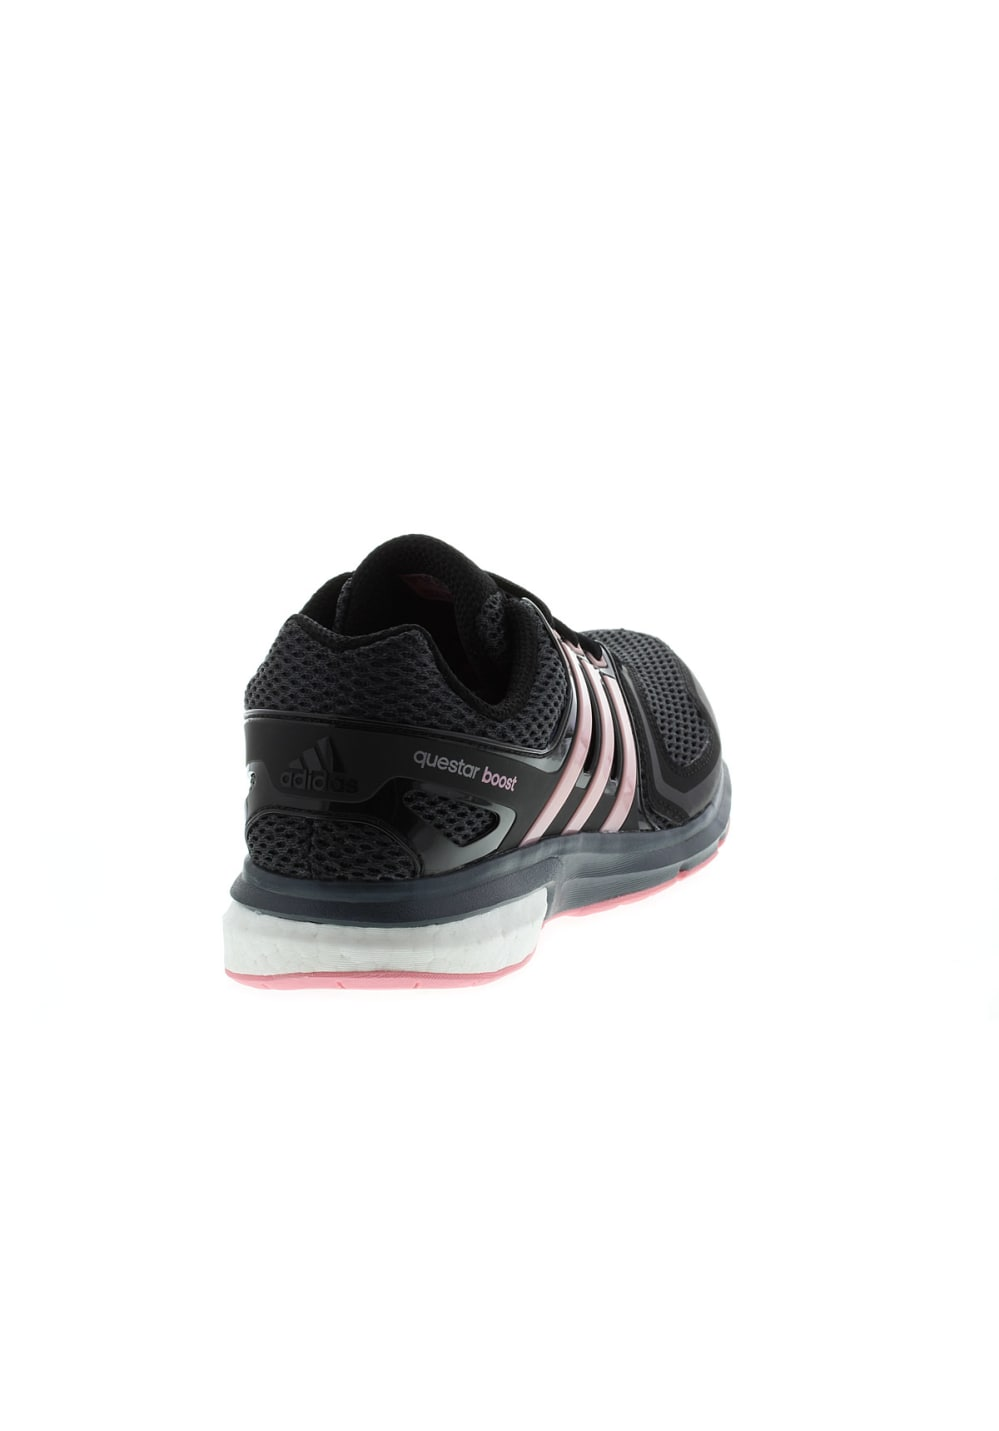 huge discount dab09 c4189 Previous. Next. -70%. adidas. Questar Boost - Laufschuhe für Damen